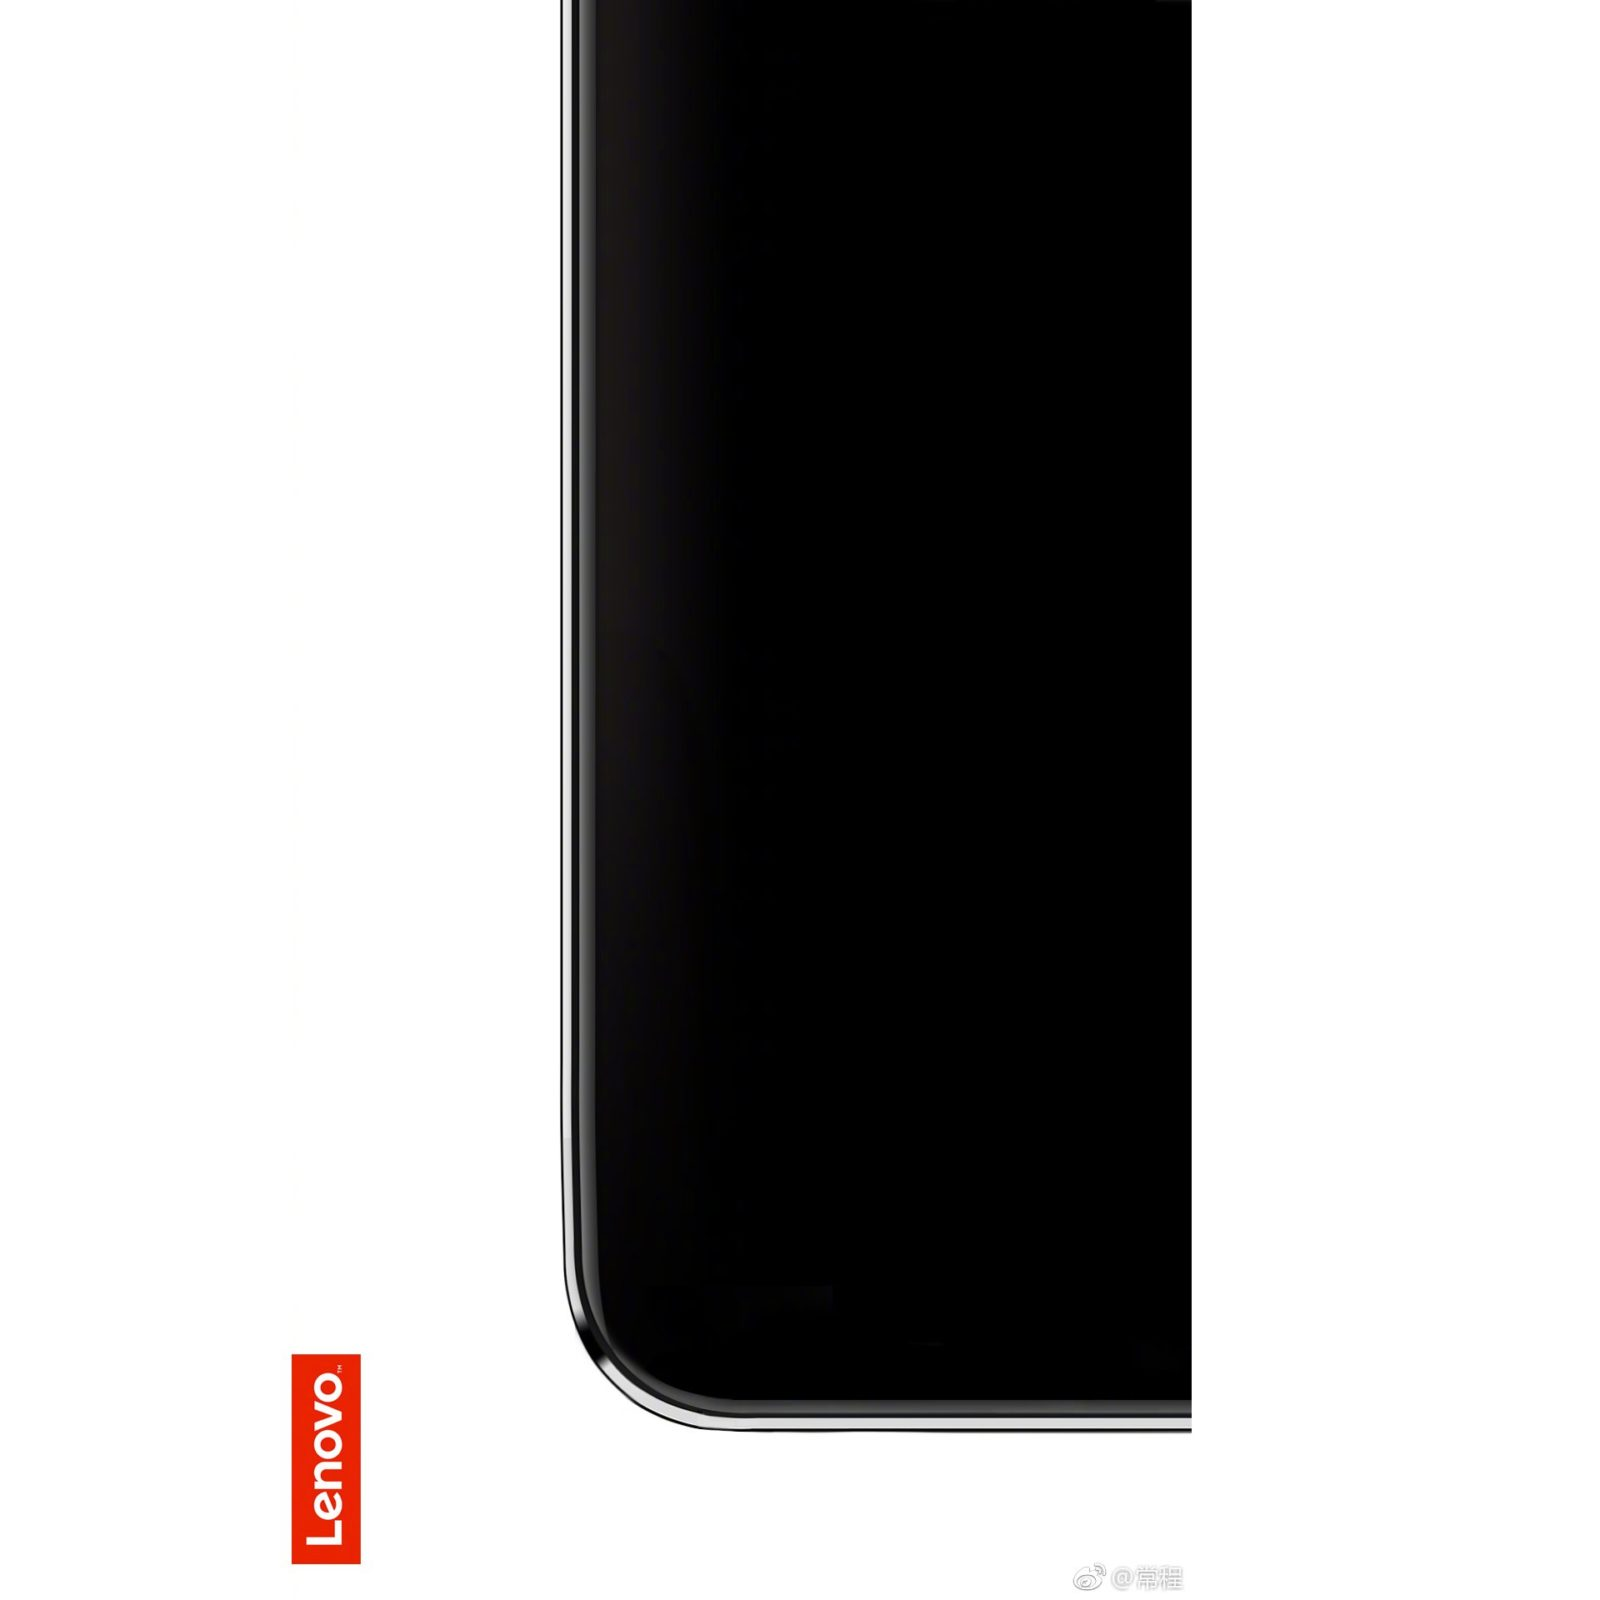 New Lenovo Z5 Teaser Image Appears Suggesting Thin Bezels